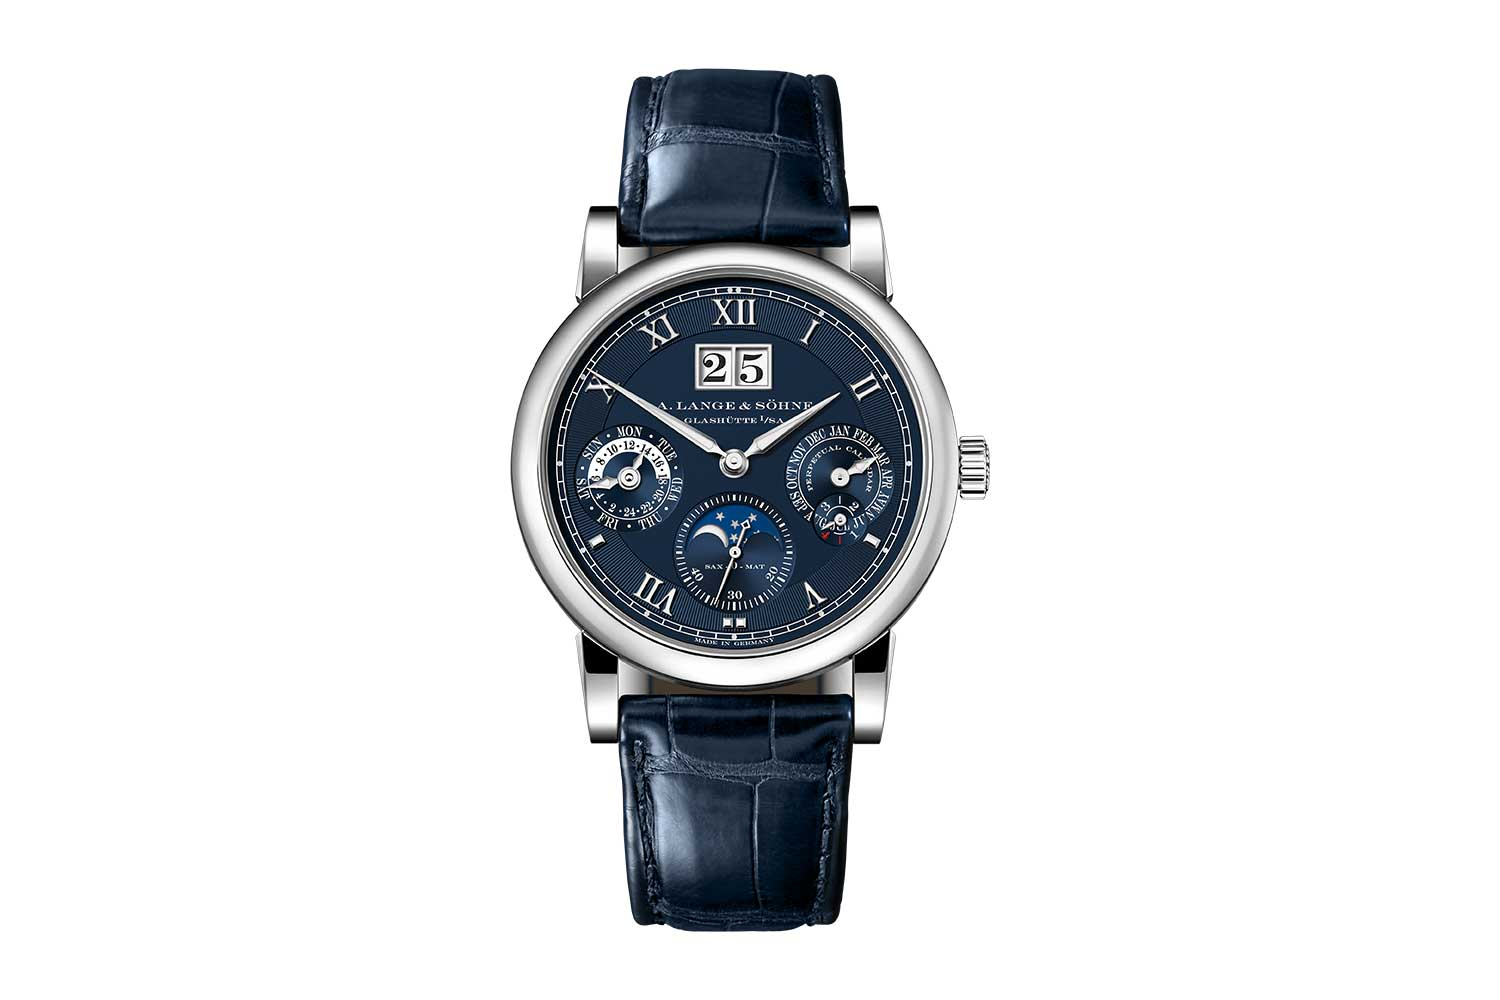 The 2021 Langematik Perpetual in white gold with blue dial – ref. 310.028, limited to 50 pieces